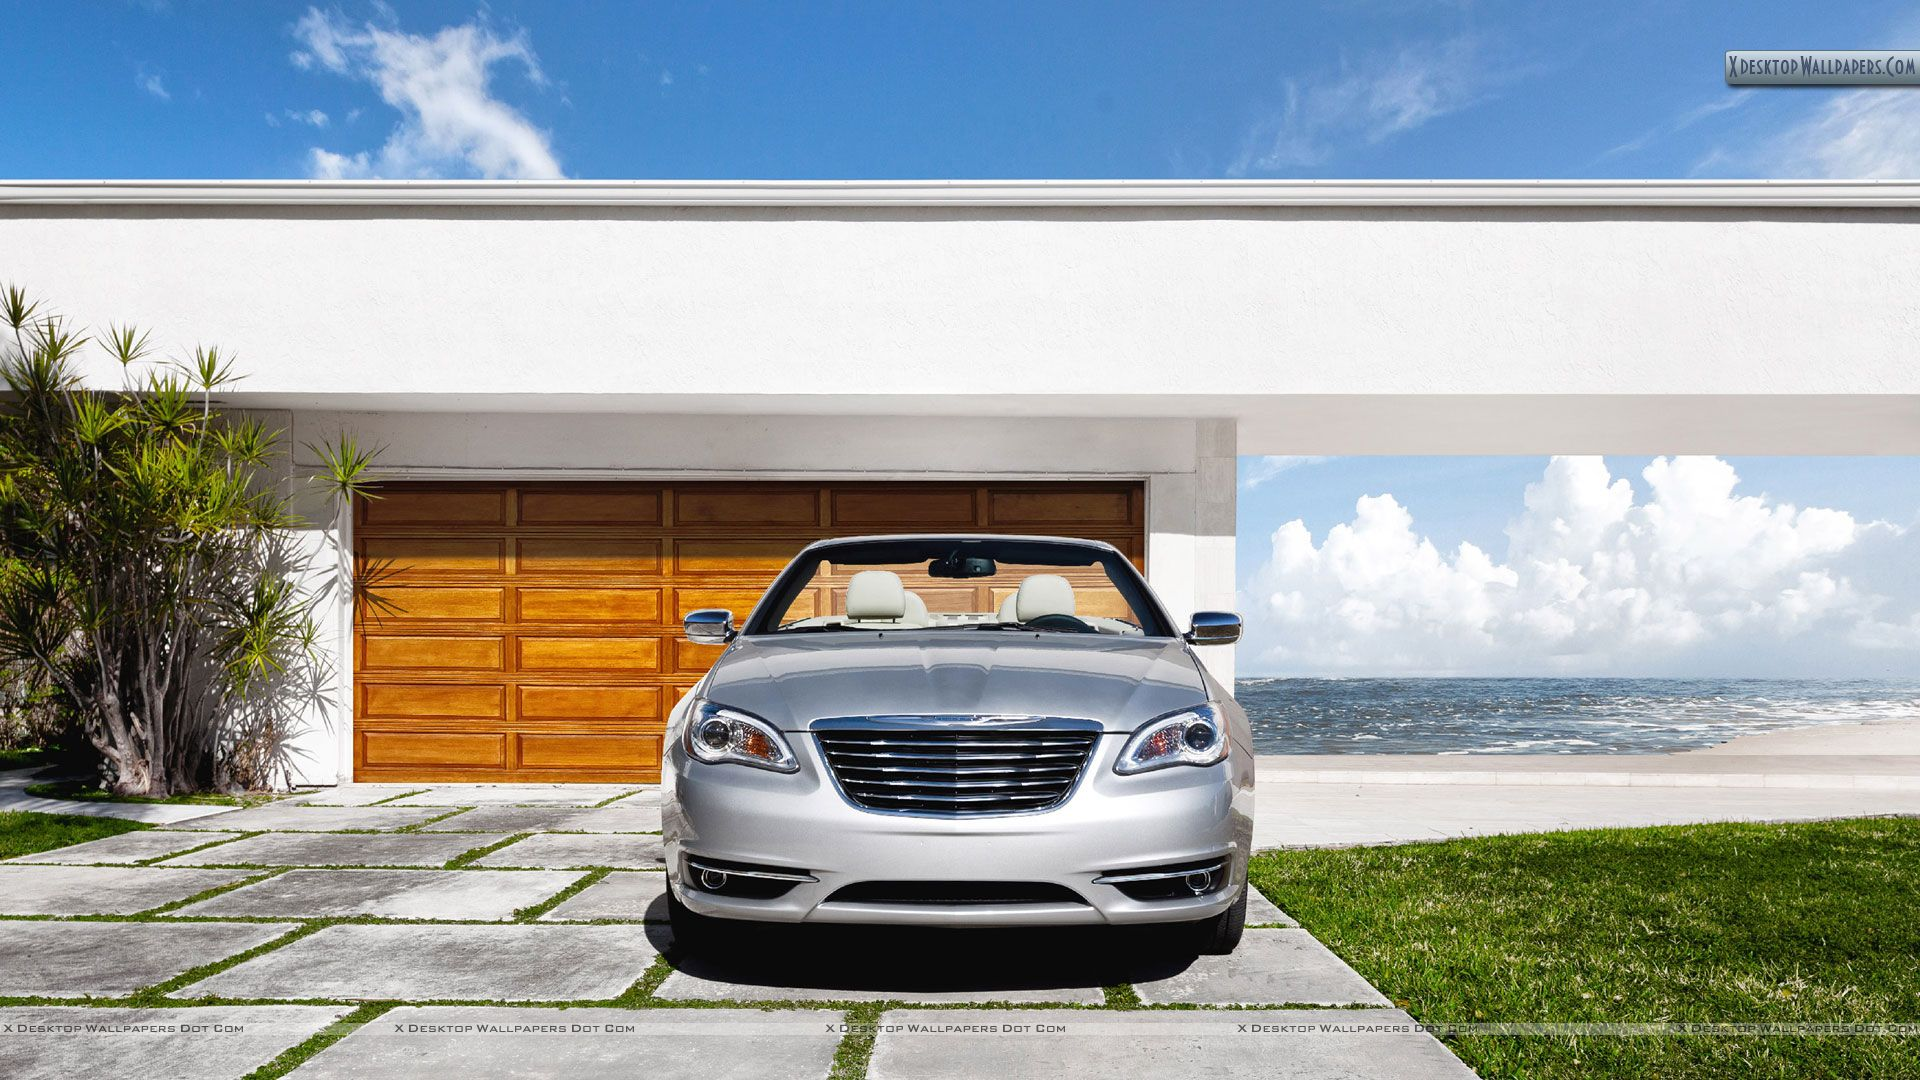 2011 Chrysler 200 Convertible Outside House Wallpaper